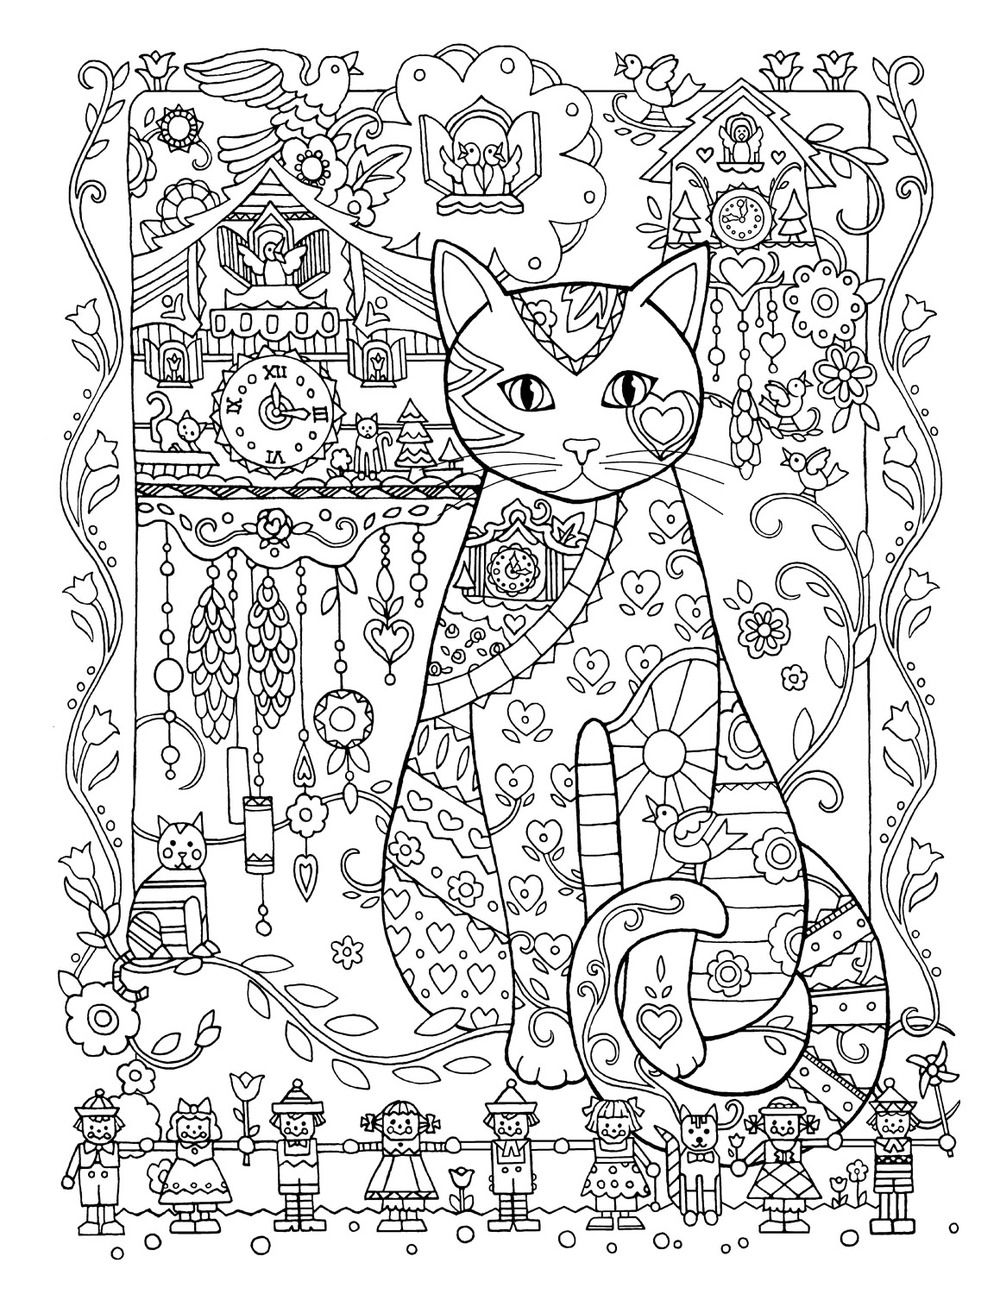 Lisa Frank Coloring Page | Cat coloring page, Animal coloring pages, Coloring  pages | 1294x1000